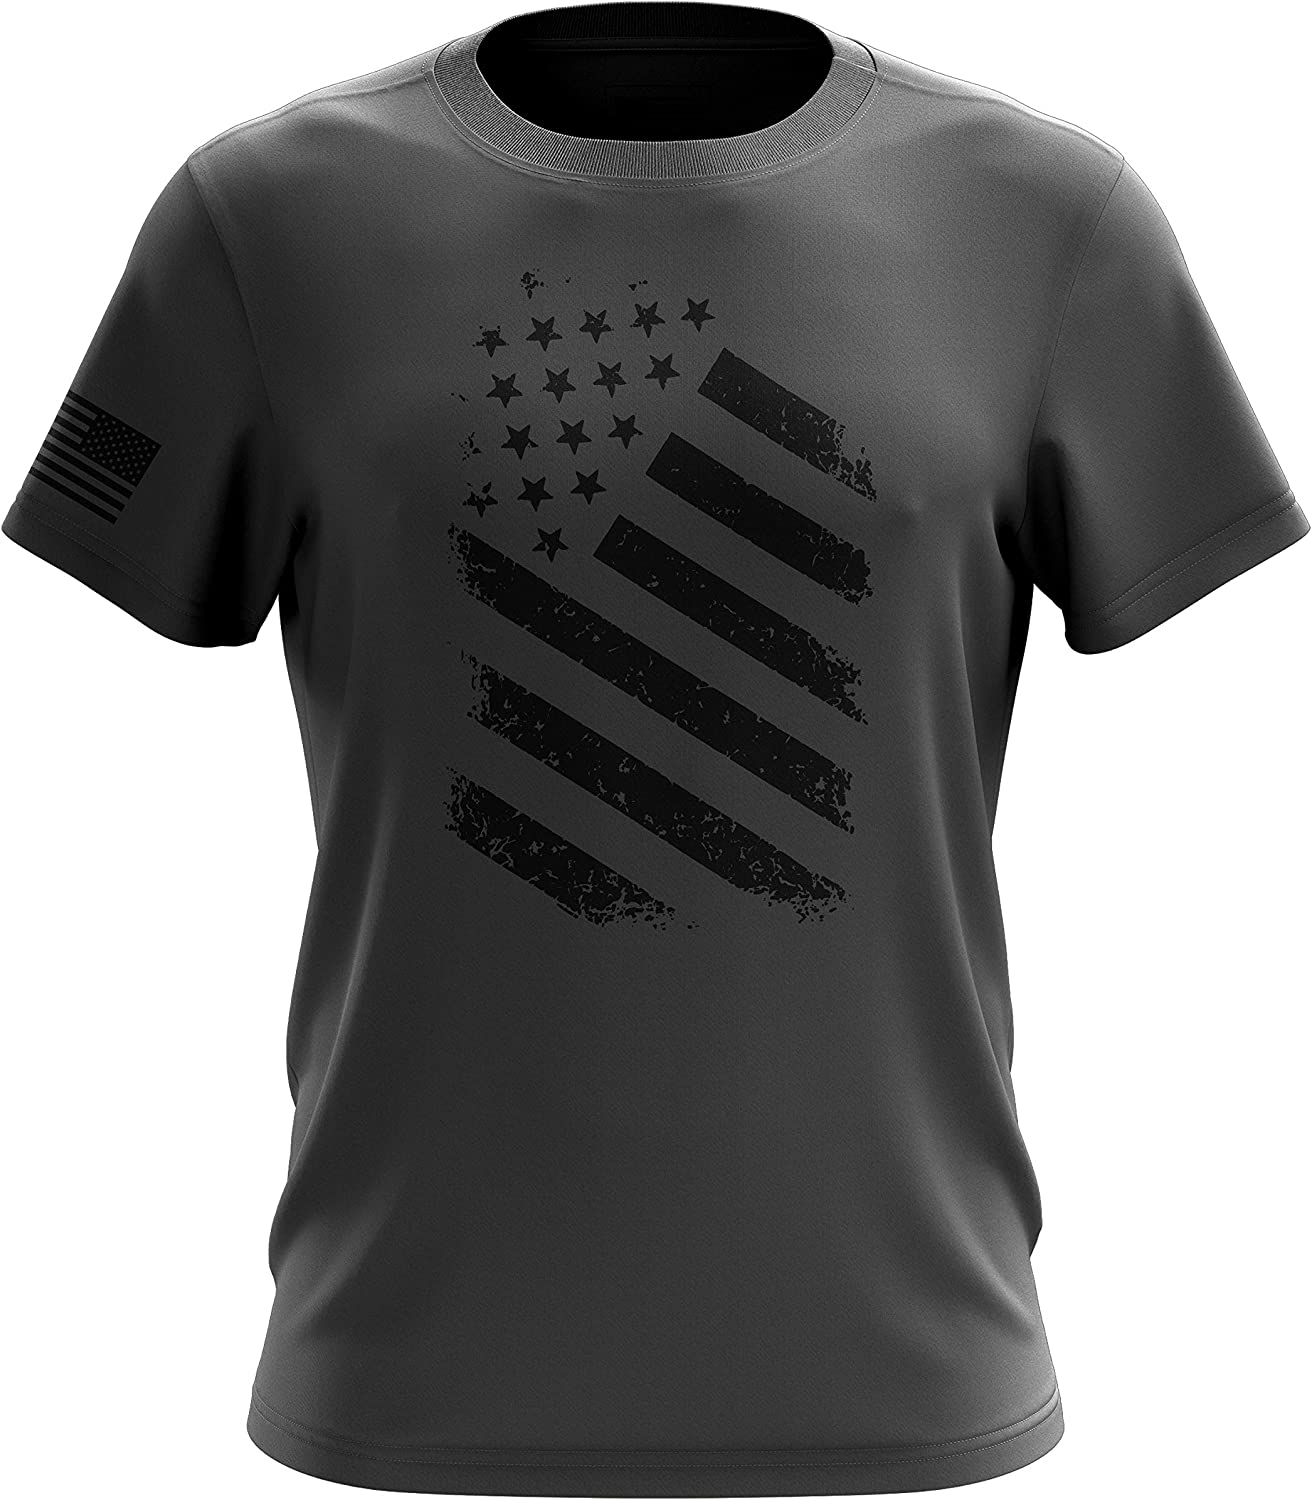 Old Glory Blue Line Red Line American Flag Military Army Mens T-Shirt Printed & Packaged in The USA